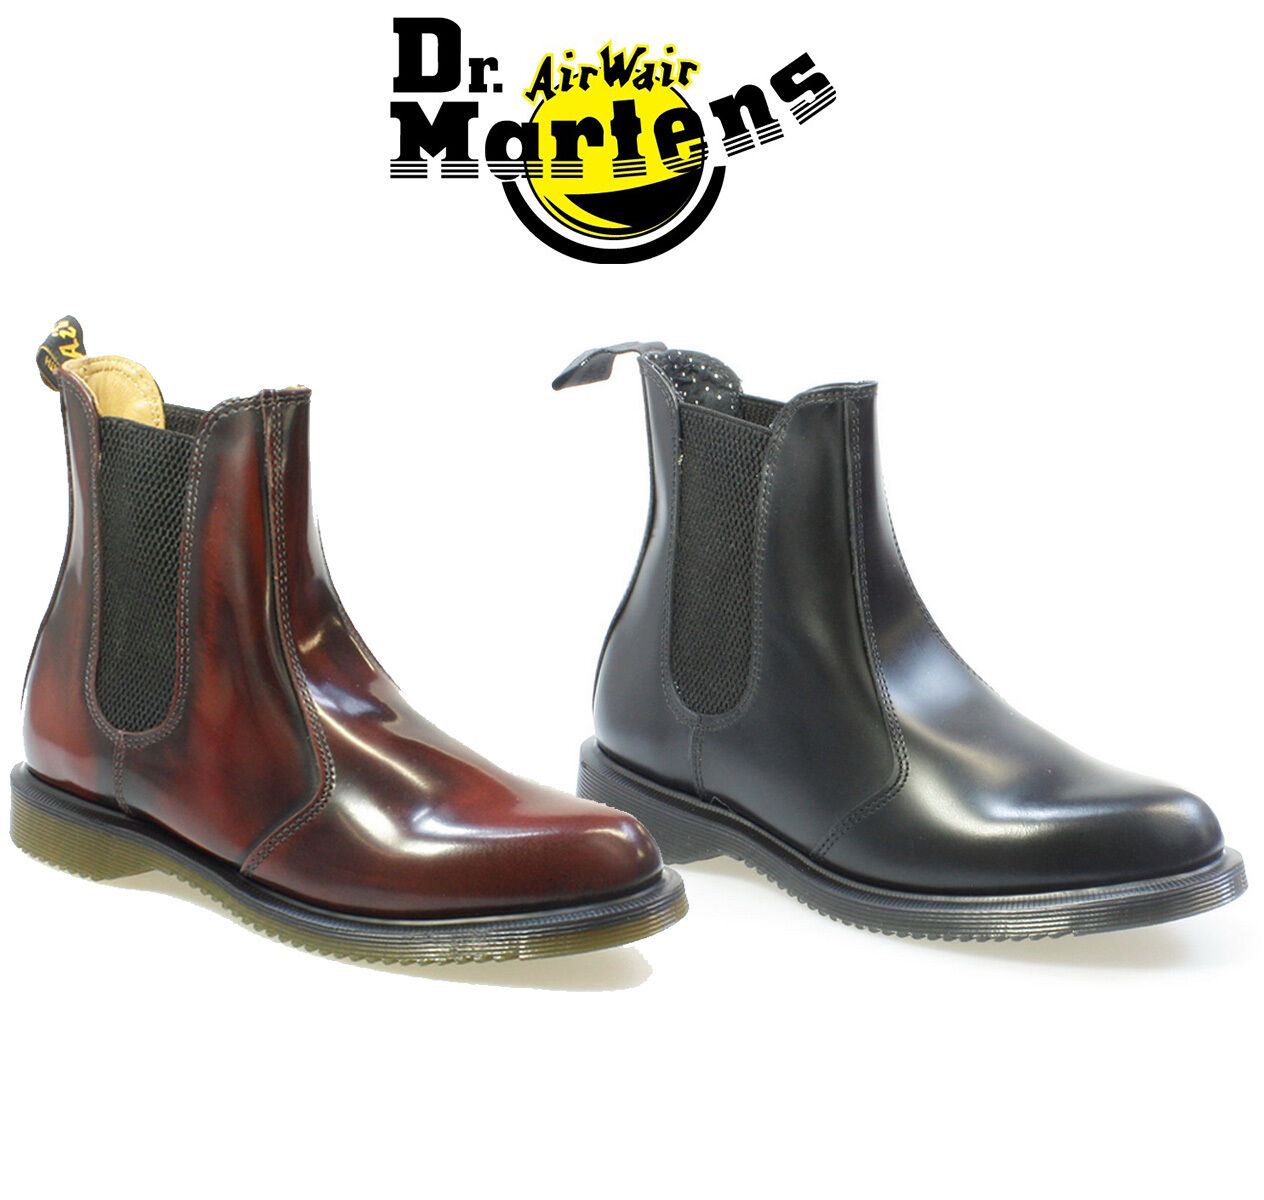 Dr. Martens Womens Flora Chelsea Boots, Black or Burgundy Red, Leather shoes